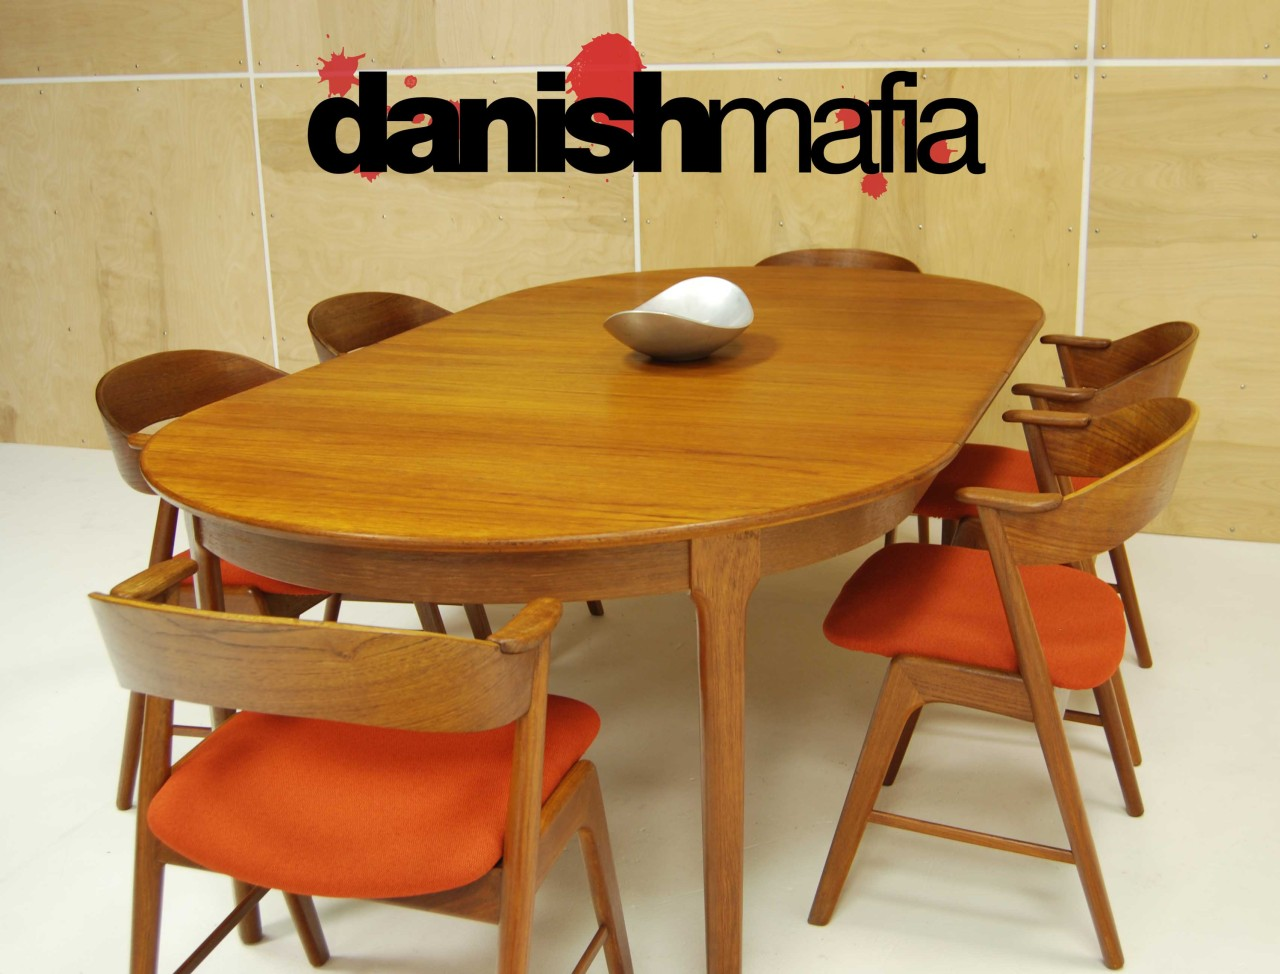 MID CENTURY DANISH MODERN OVAL TEAK DINING TABLE W LEAVES - Teak dining table with leaf